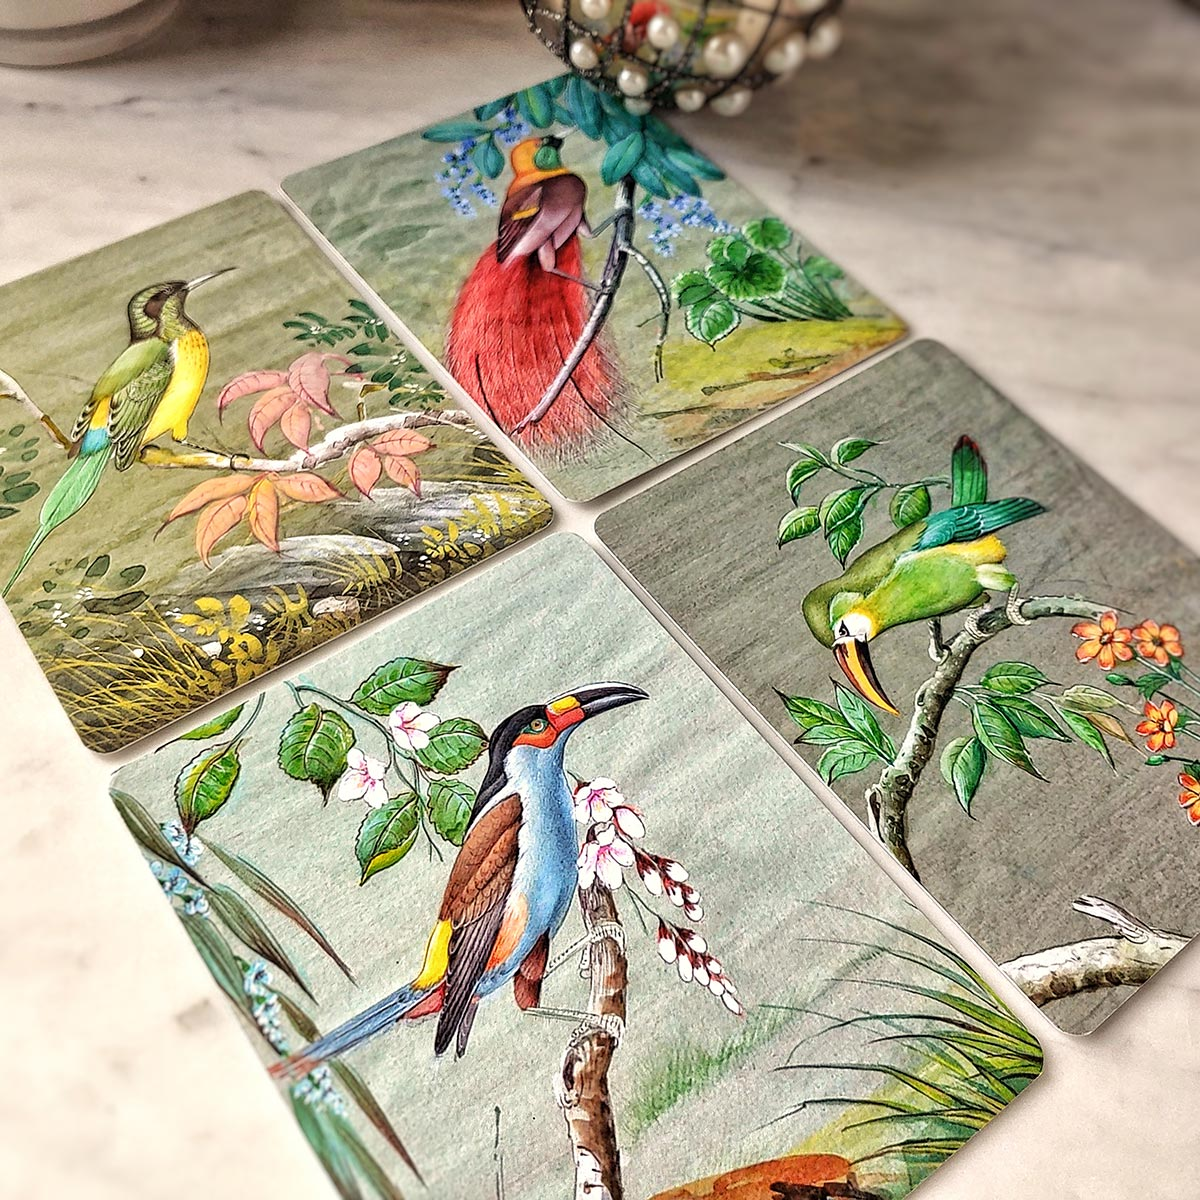 The Punctilious Mr. P's 'birds of india' note card pack featuring all 4 images of the birds